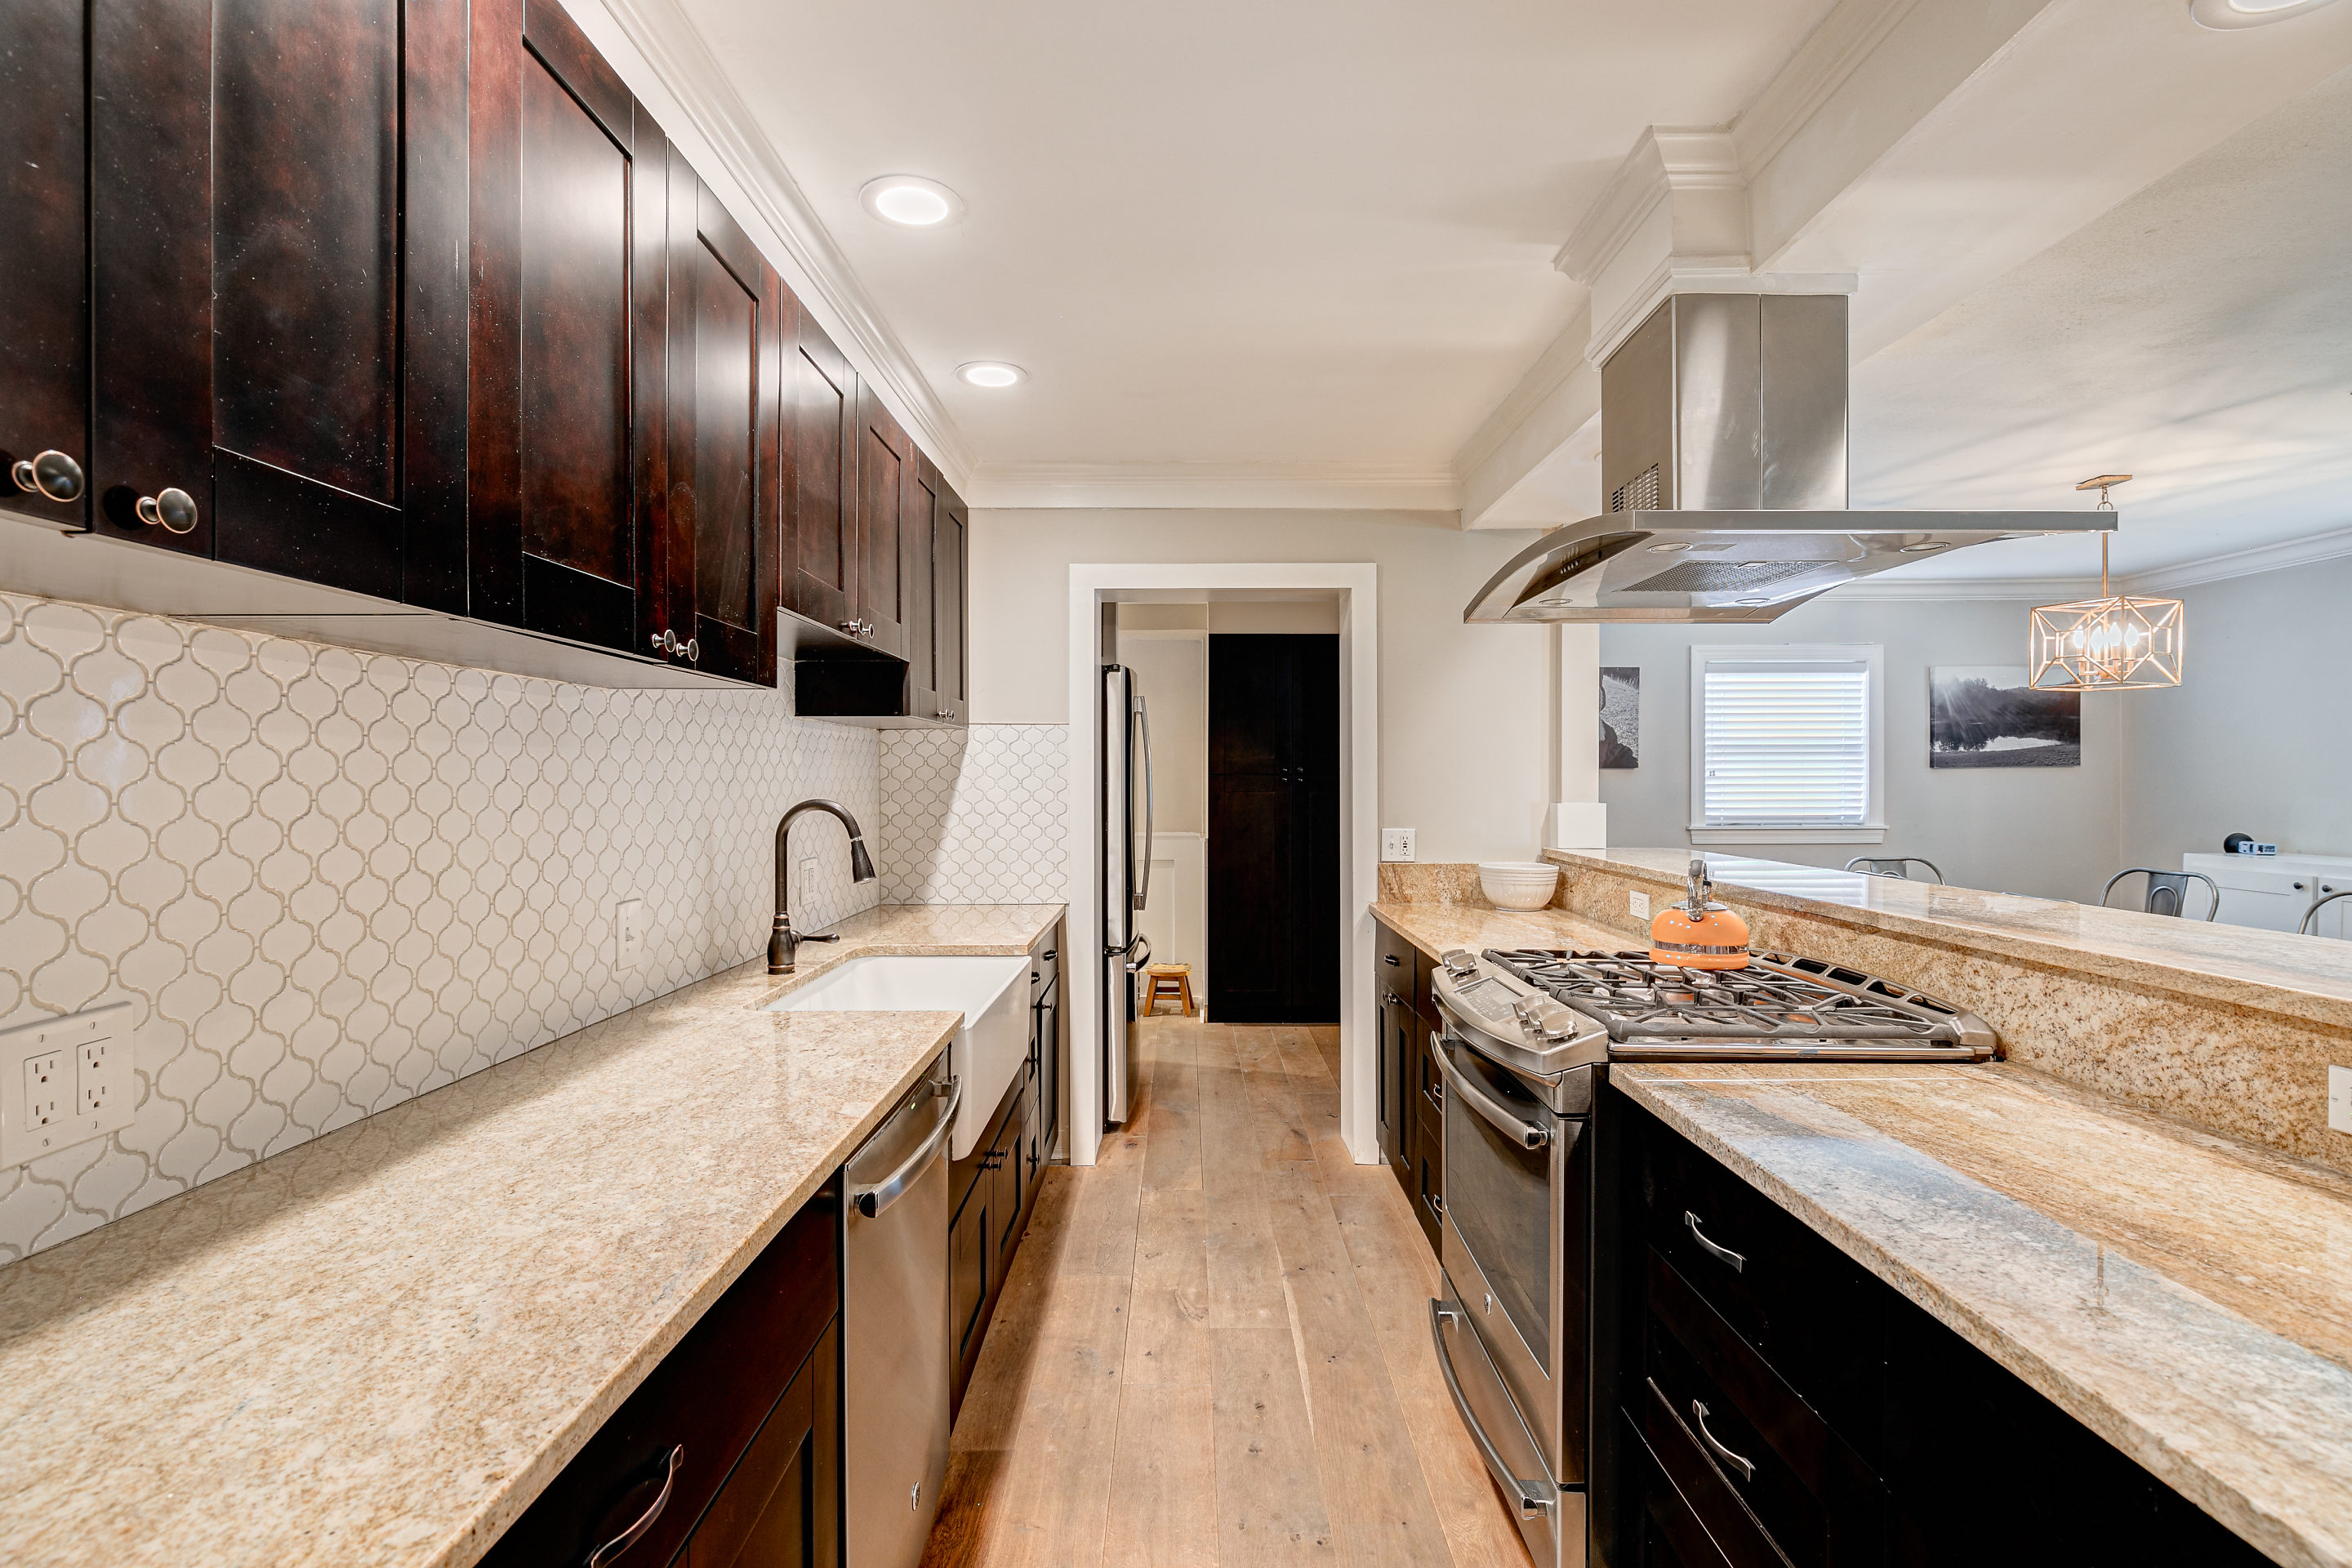 409-Erie-Granite-Countertops-Davis-Islands-Cristan-Fadal